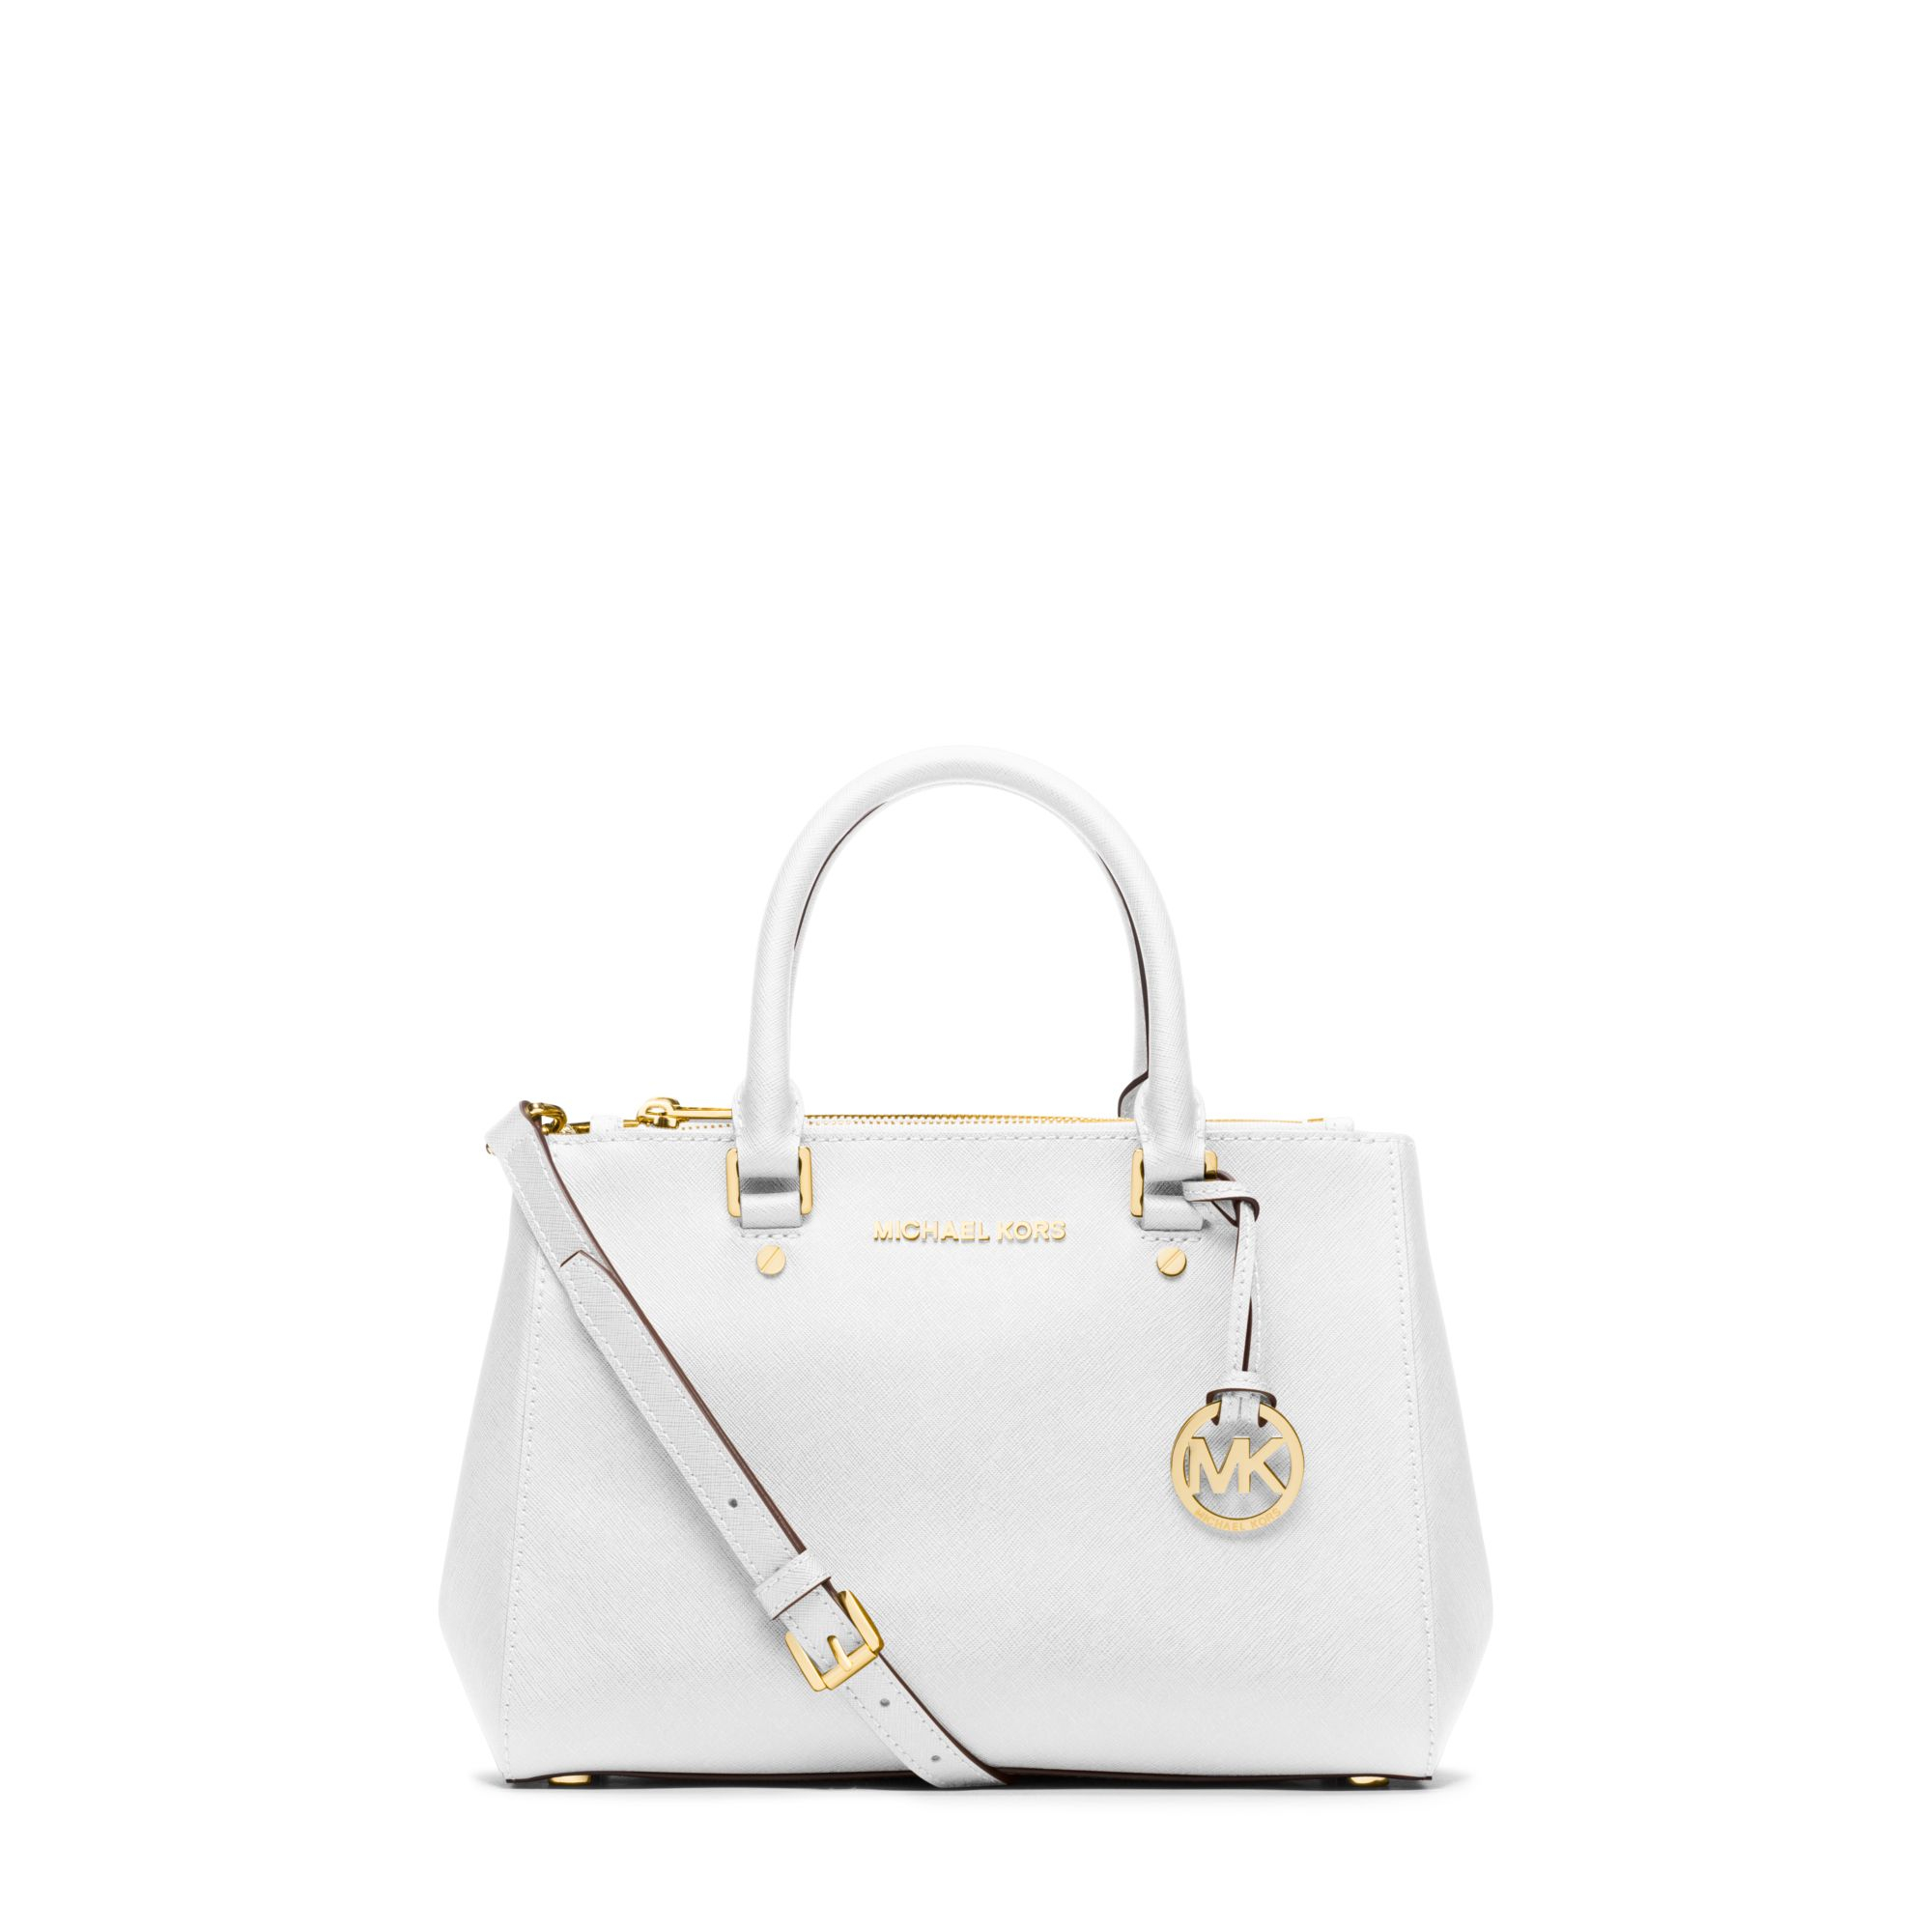 983659a10294 Lyst - Michael Kors Sutton Small Saffiano Leather Satchel in White